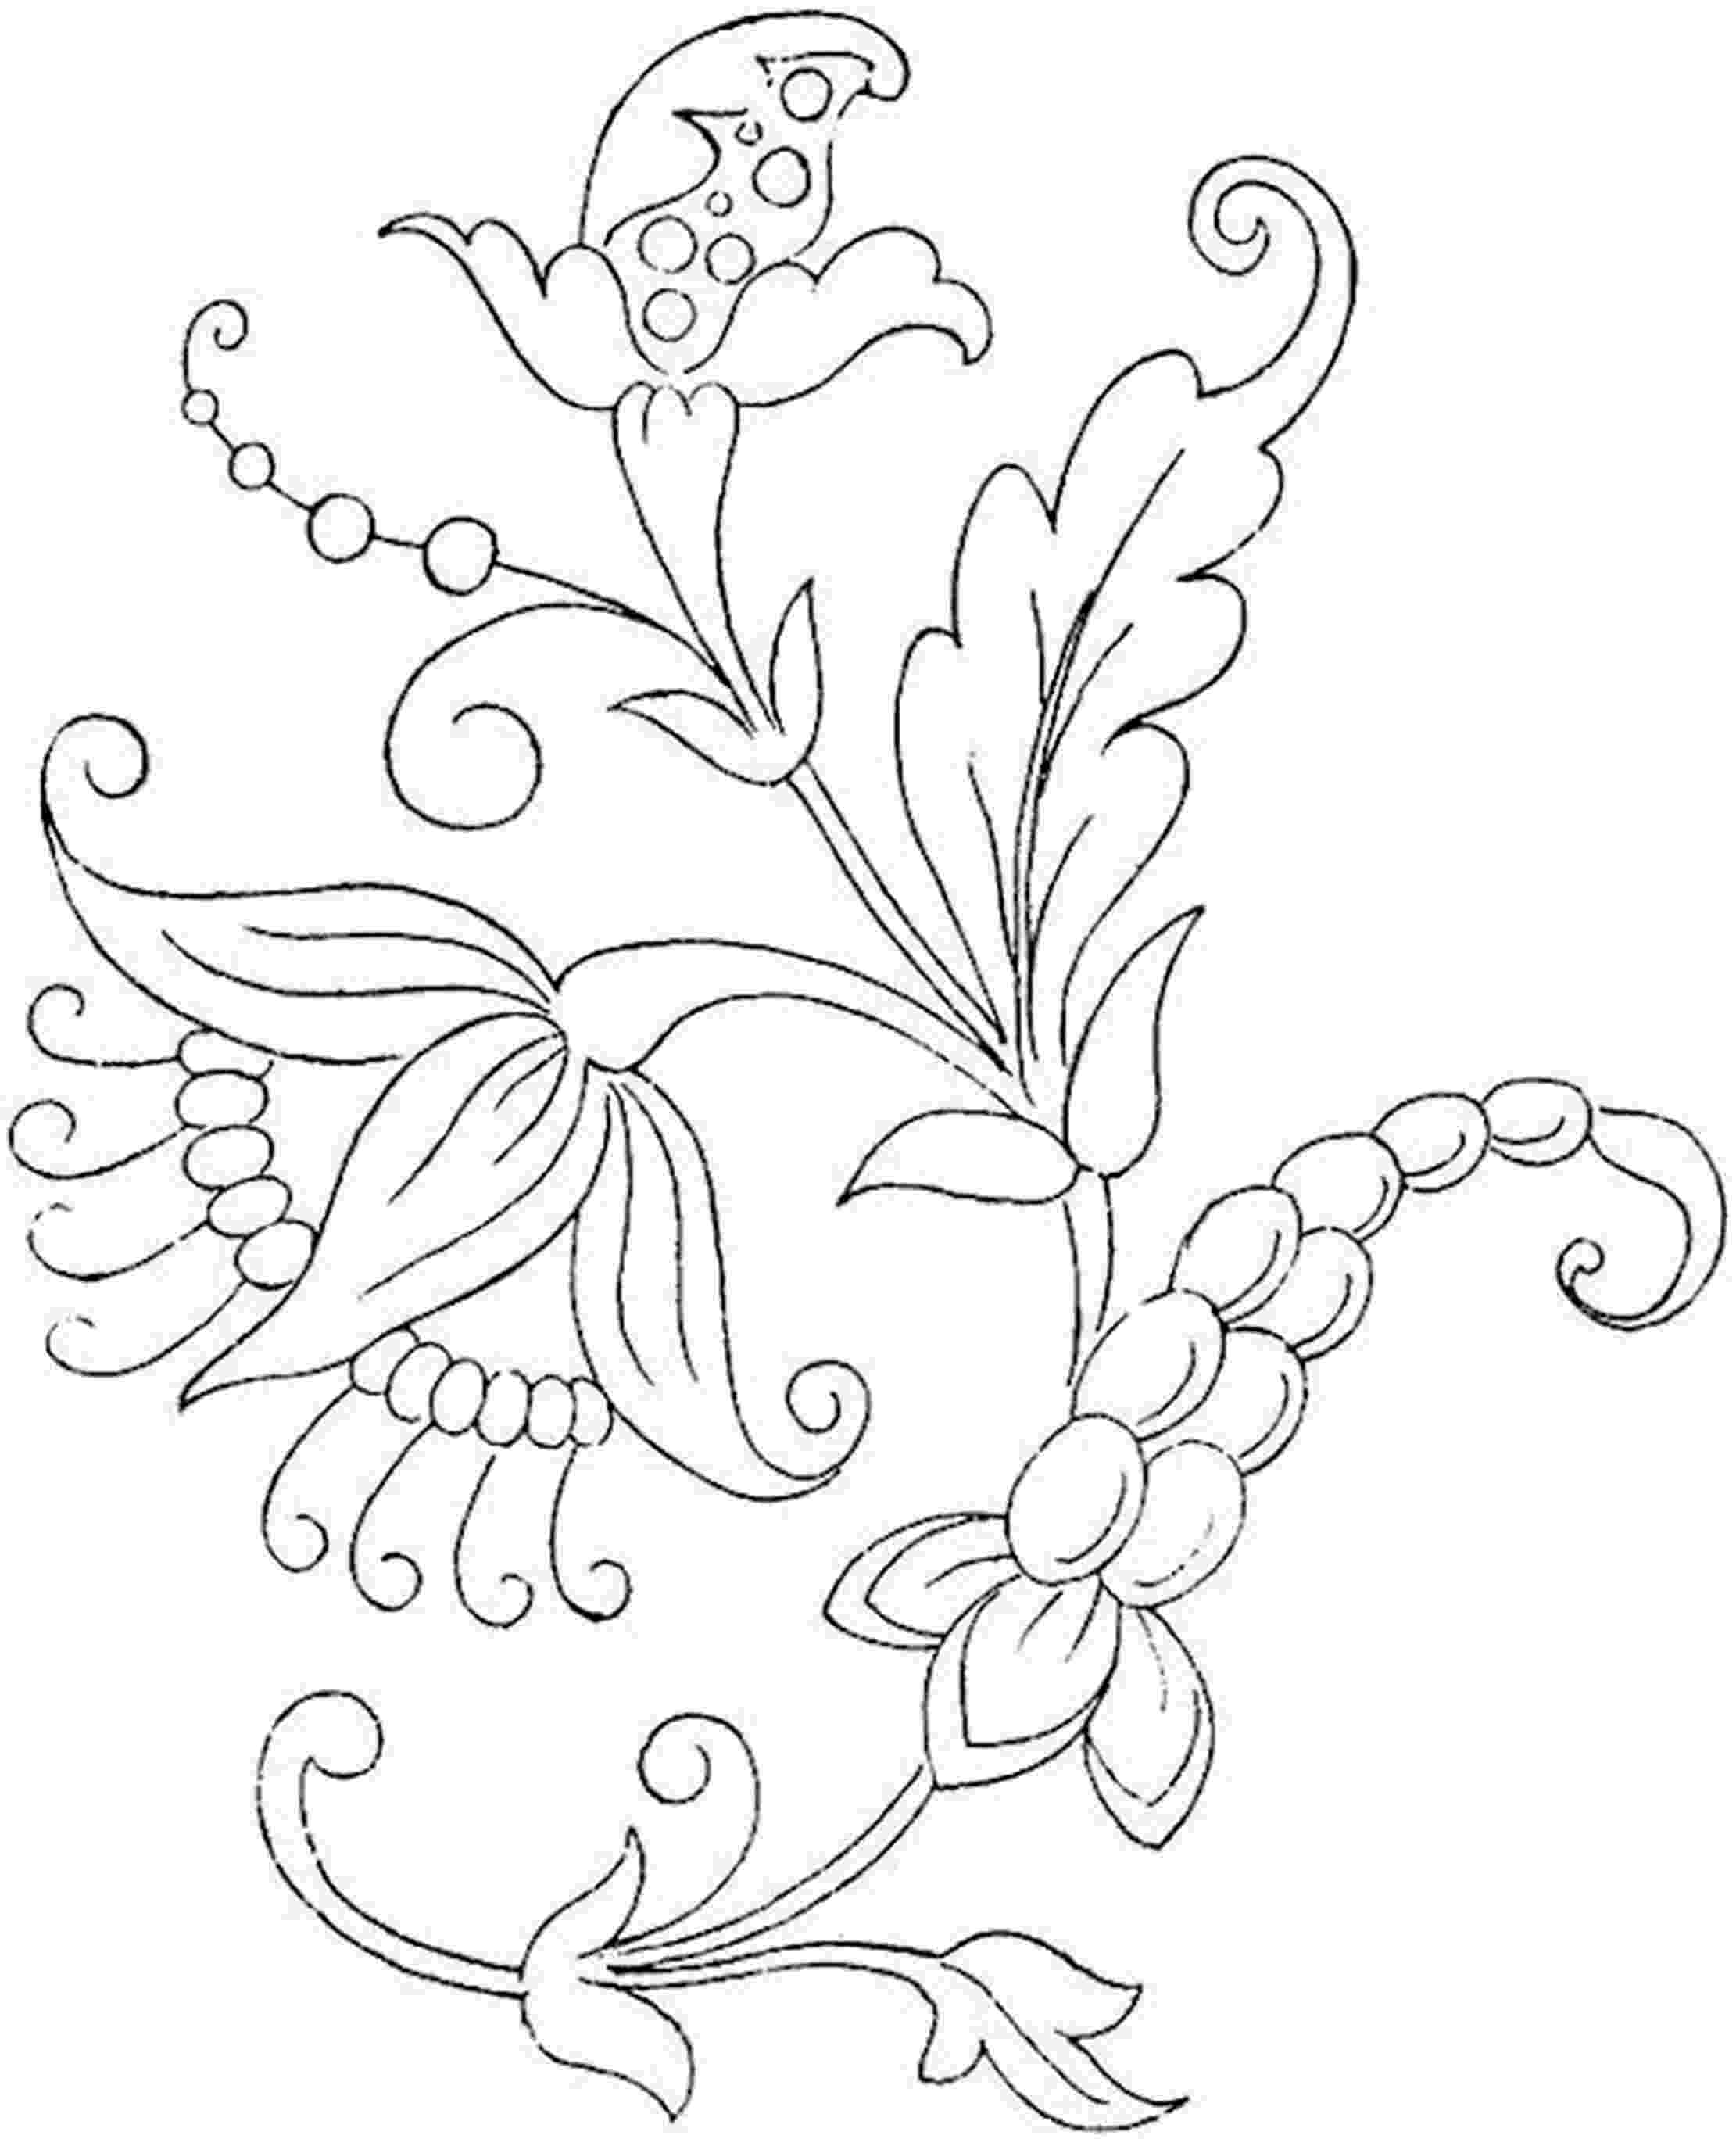 flower for coloring free printable flower coloring pages for kids best coloring for flower 1 1